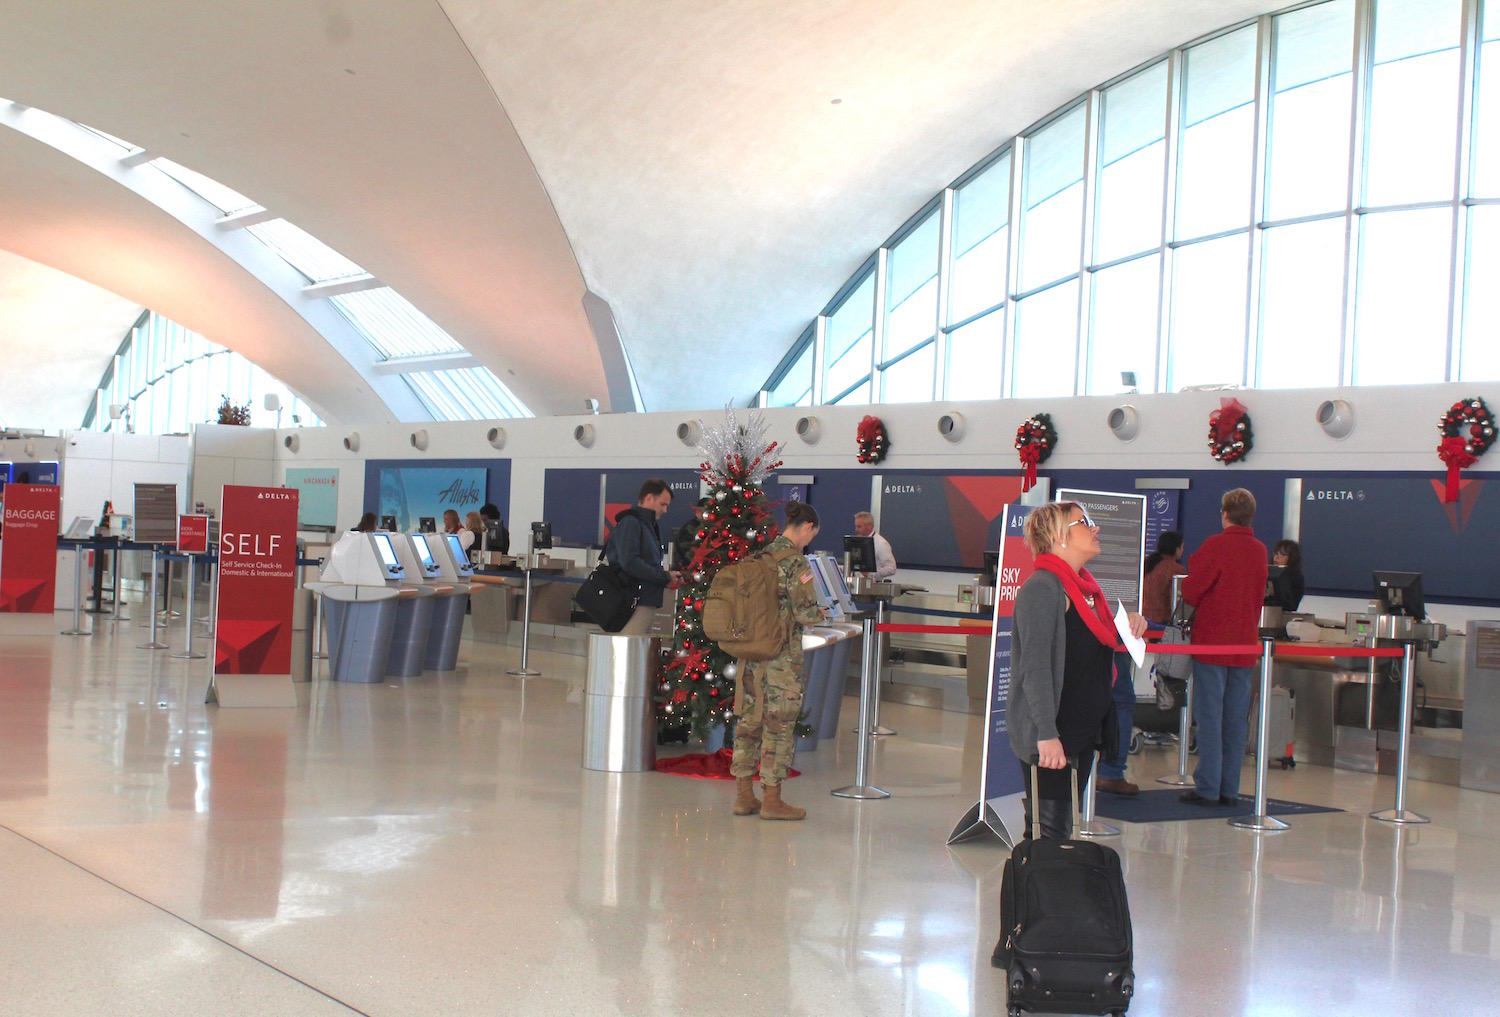 About 1 Million Passengers Come Through Lambert Airport Every Month